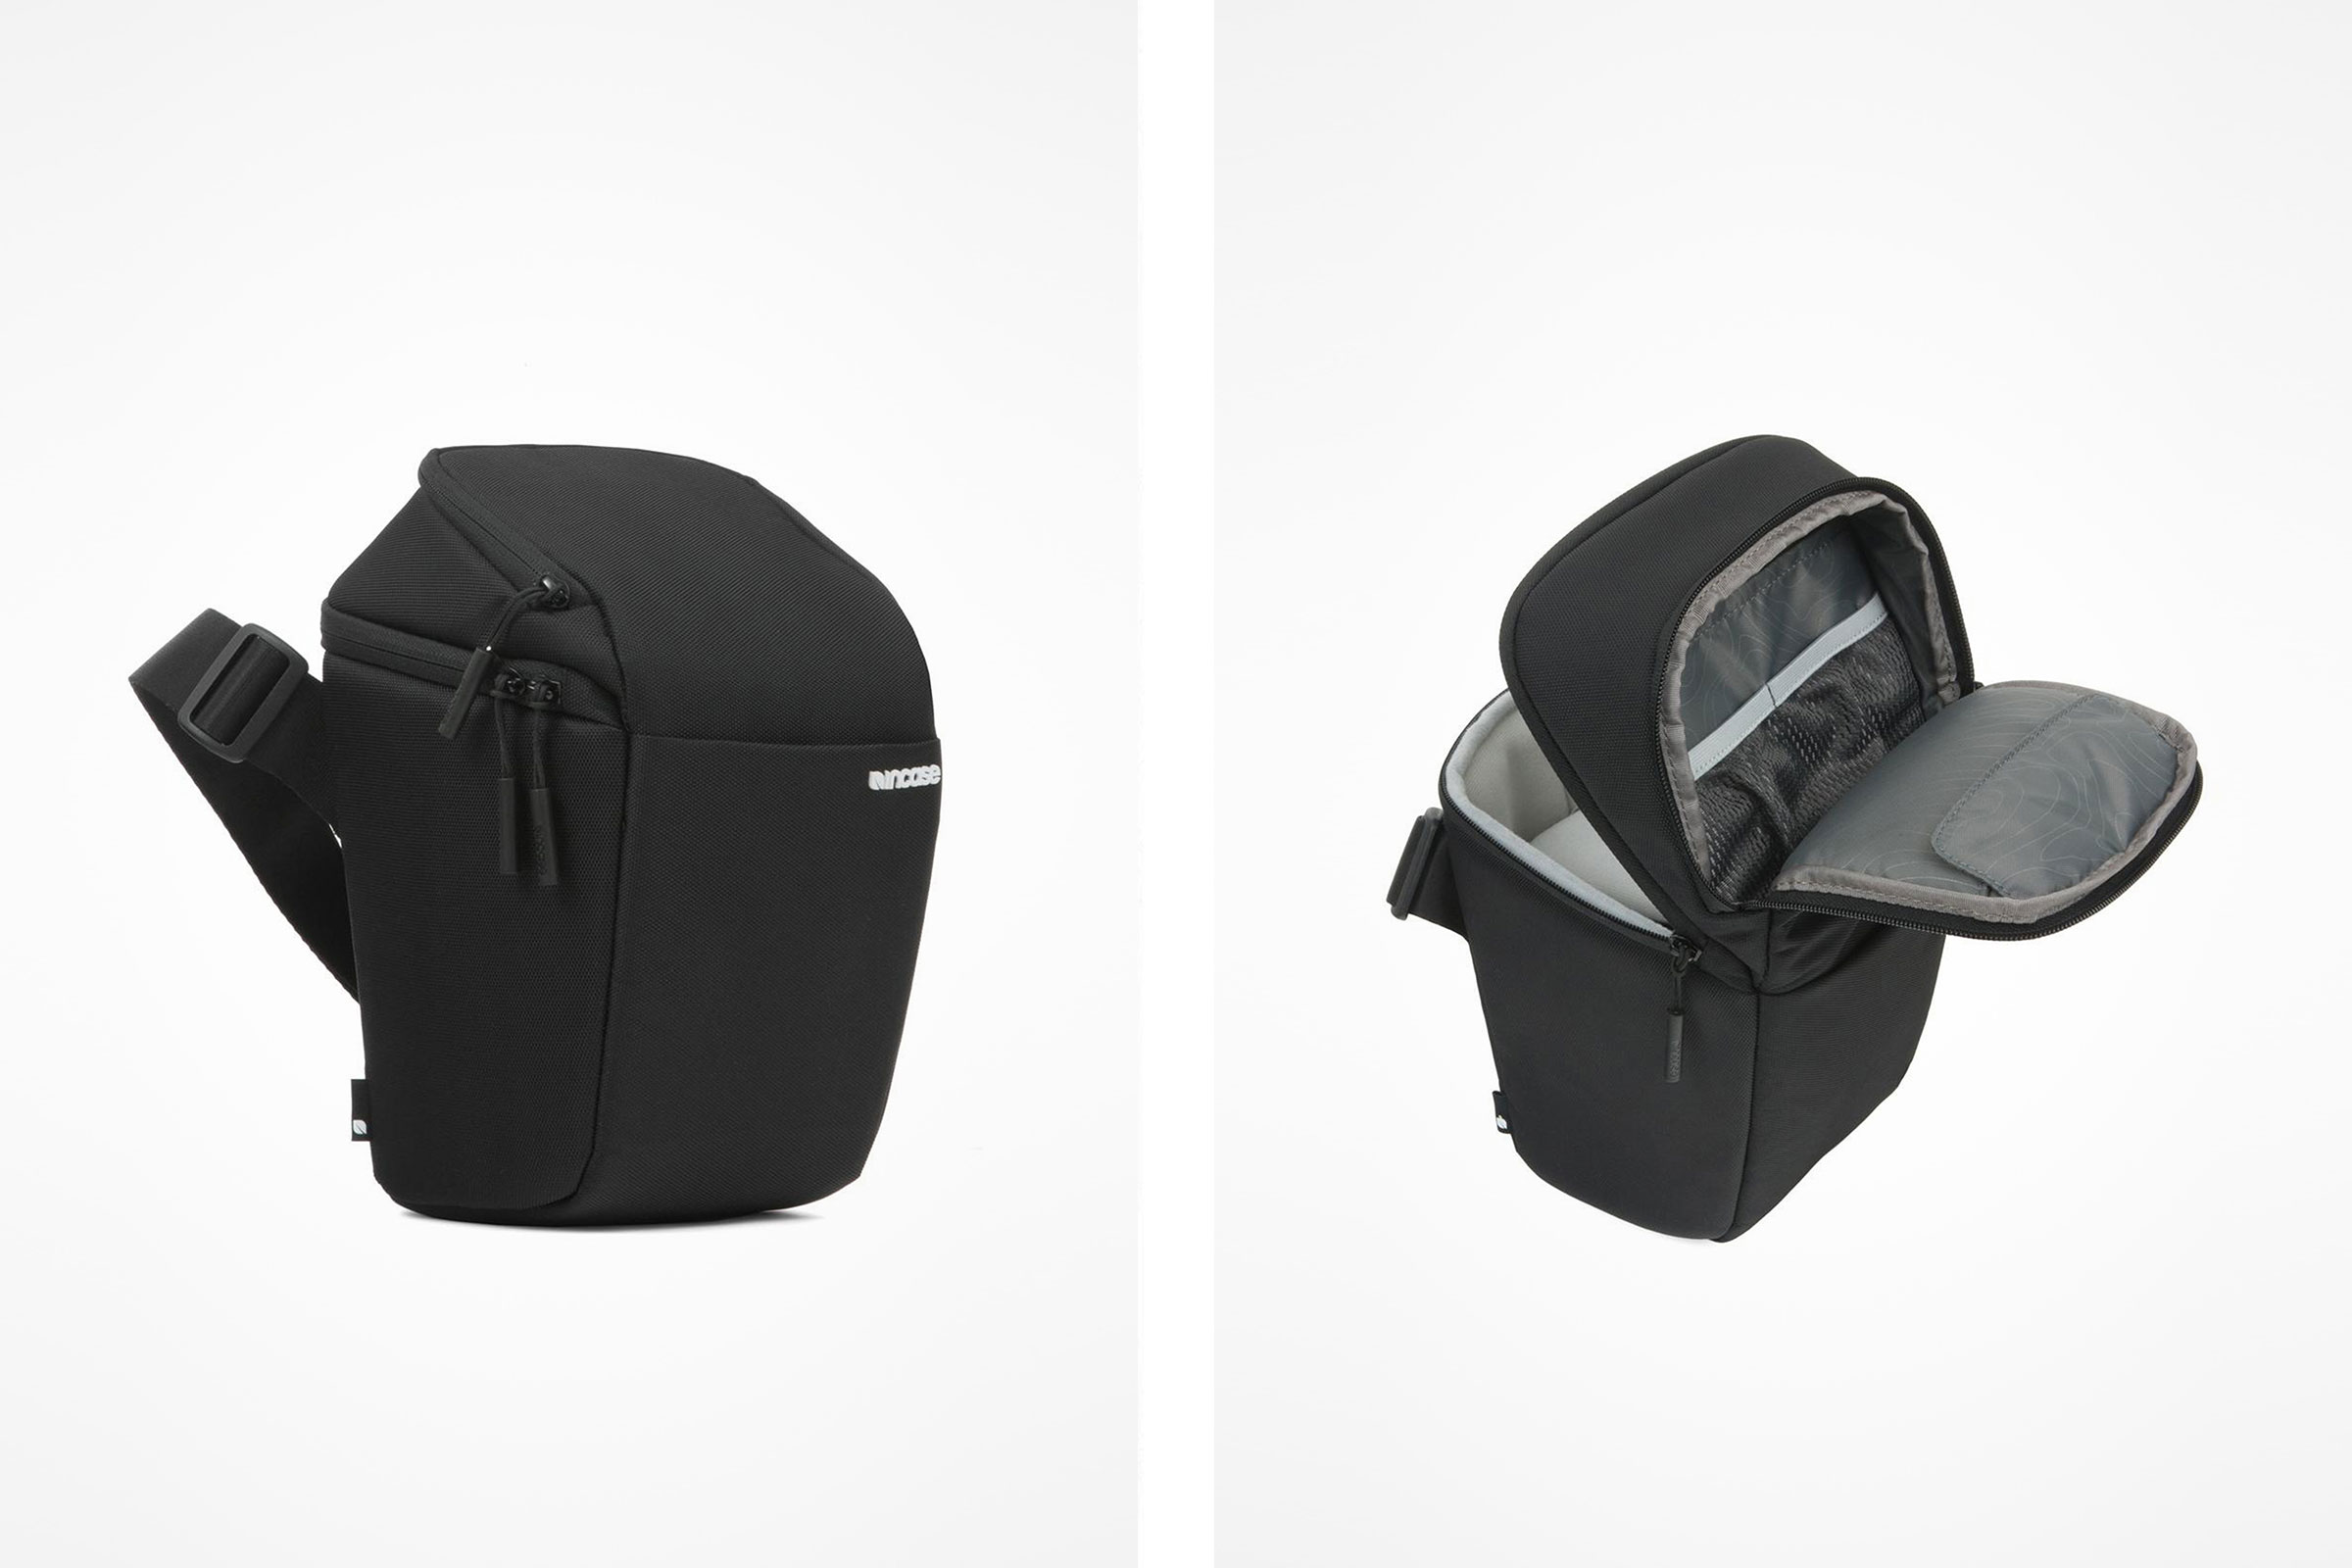 Minimalist Camera Bags For Your Next Holiday